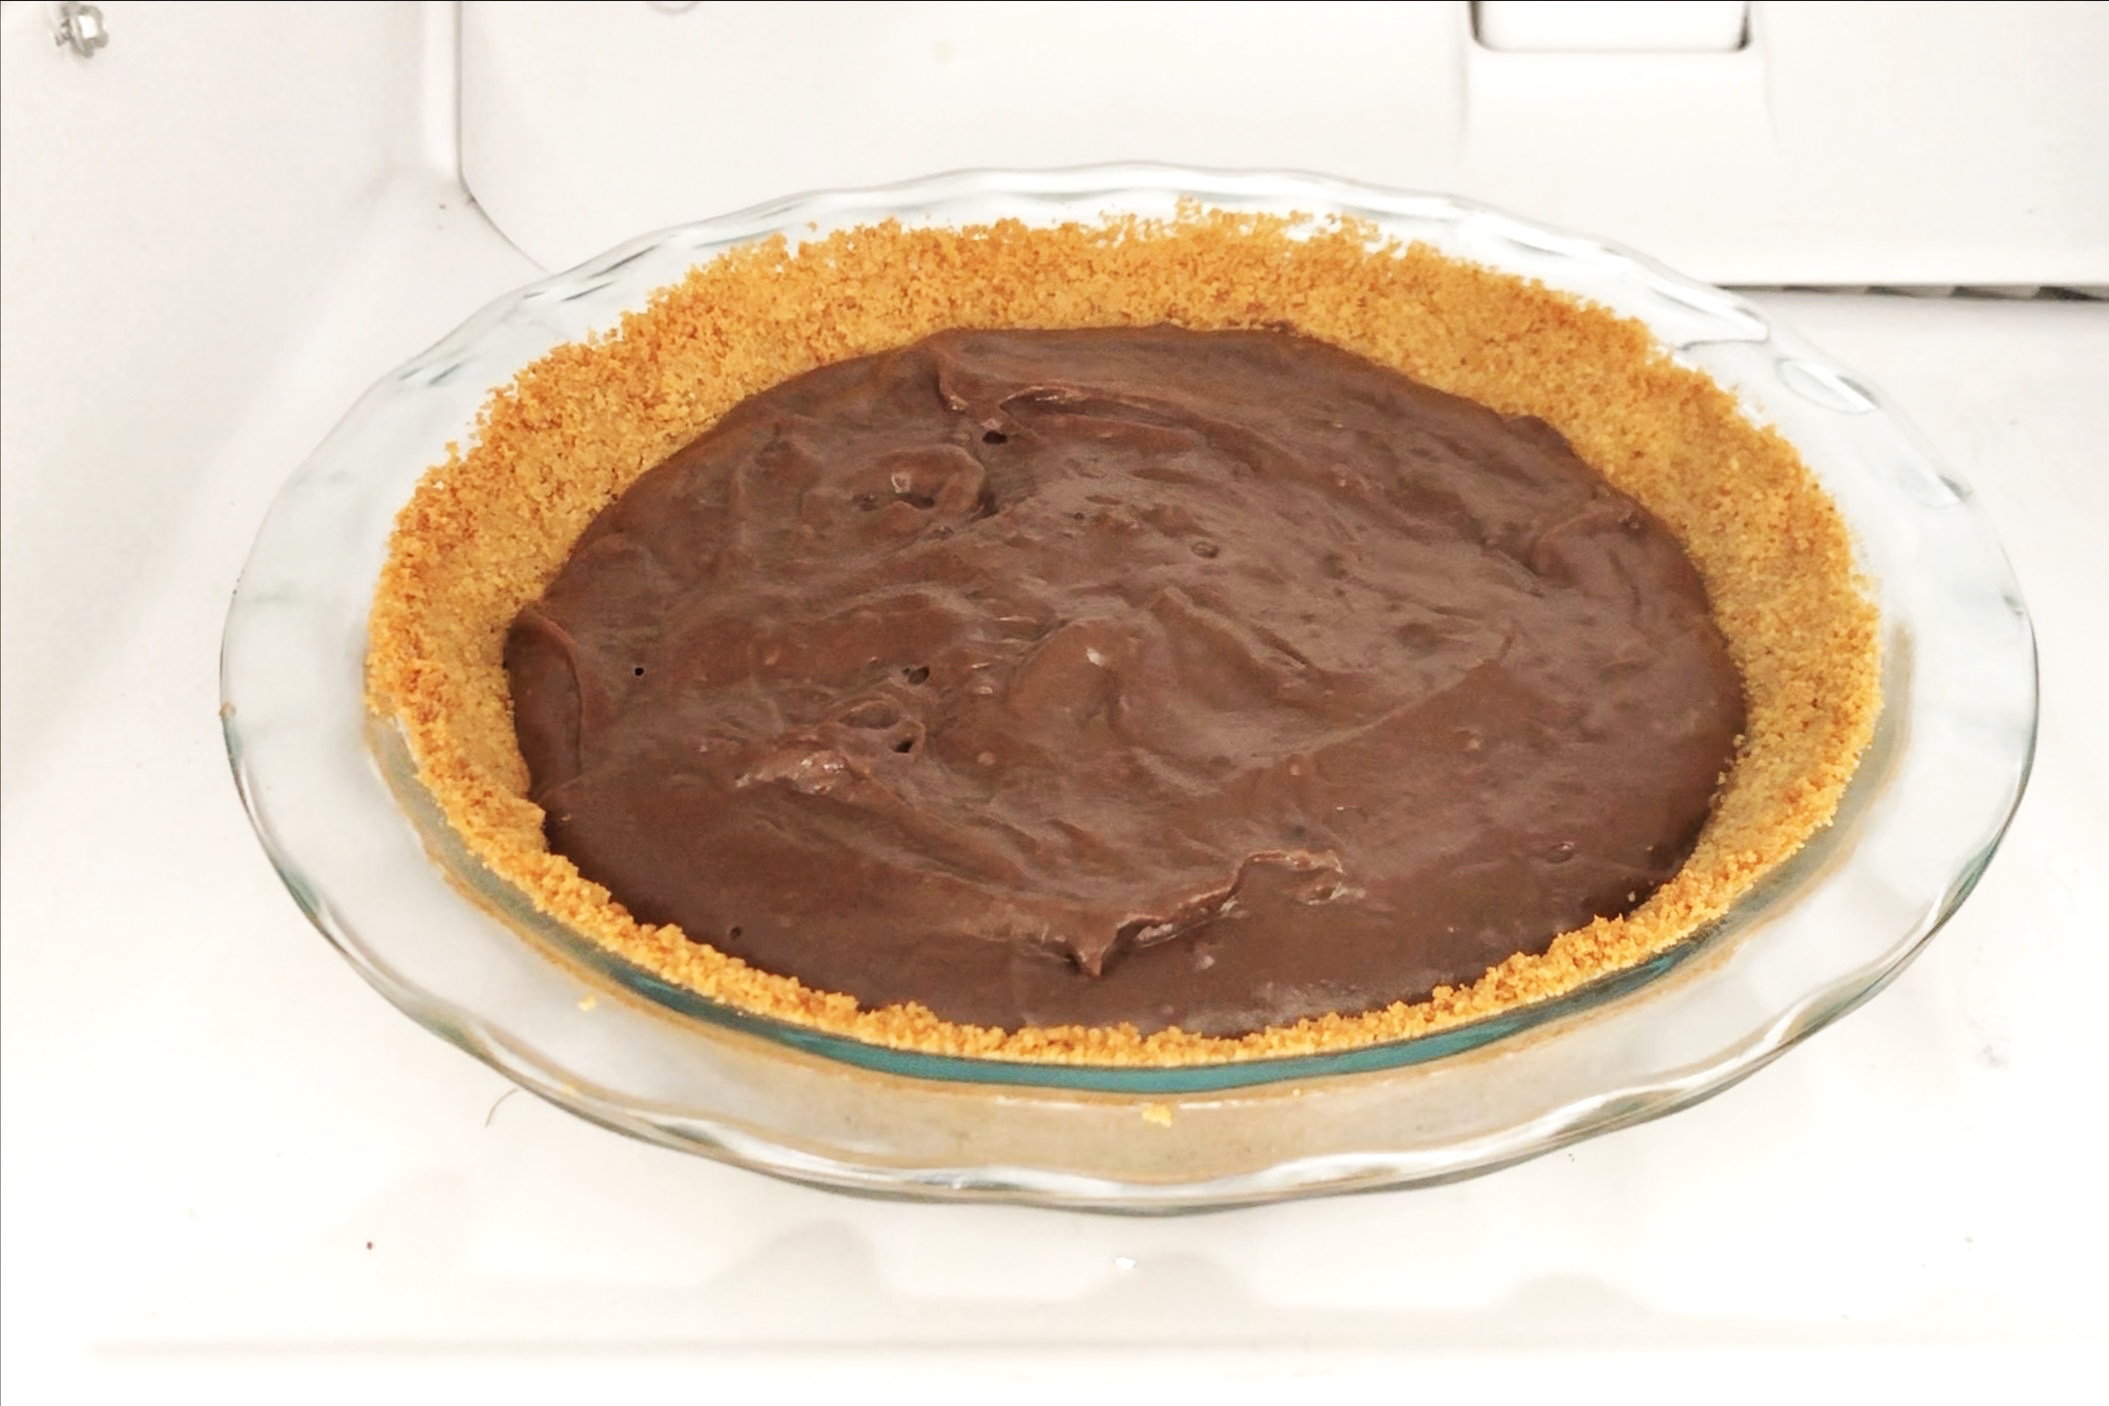 9. Place pie in the refrigerator for at least 3-4 hours before adding whipped cream topping. -